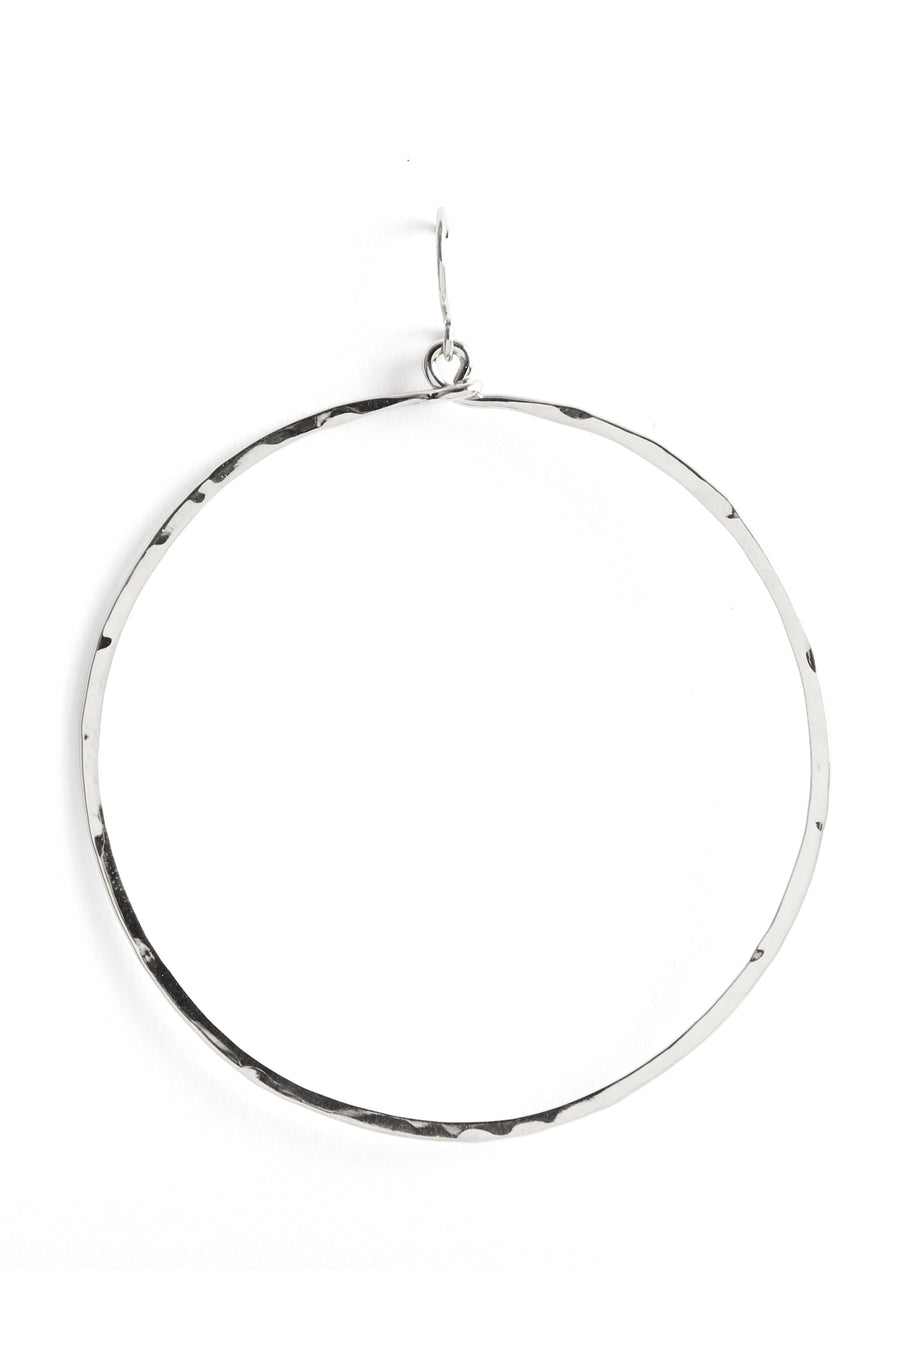 Hammered Circle-Silver